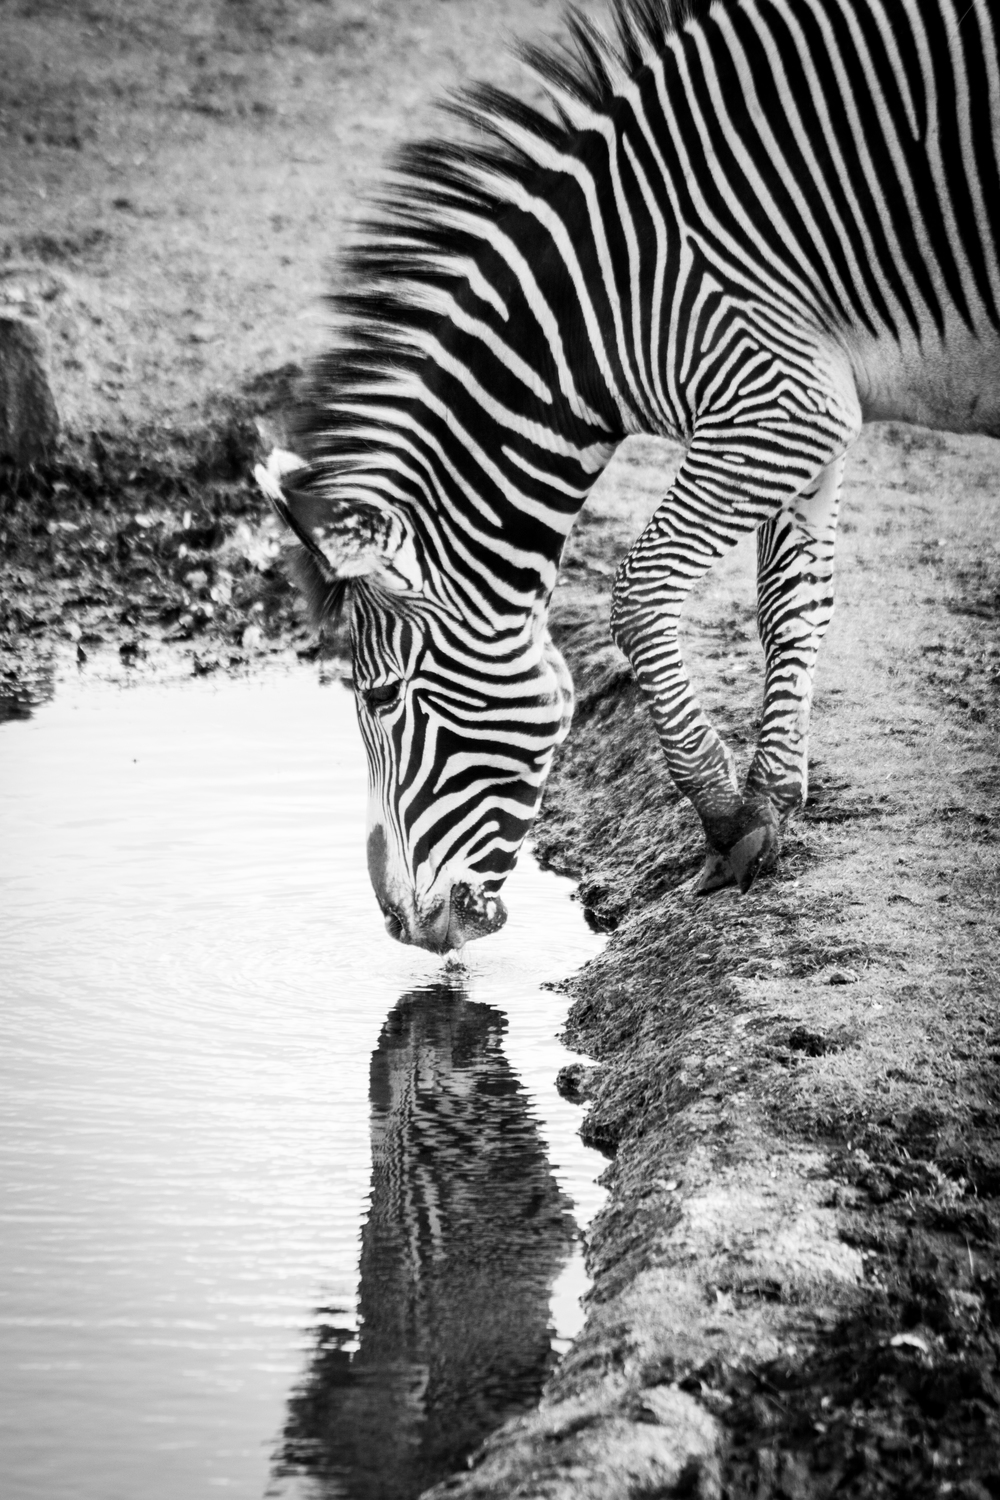 Zebra Reflection - Edinburgh Zoo - Sat 1 March 2014 -4183.jpg